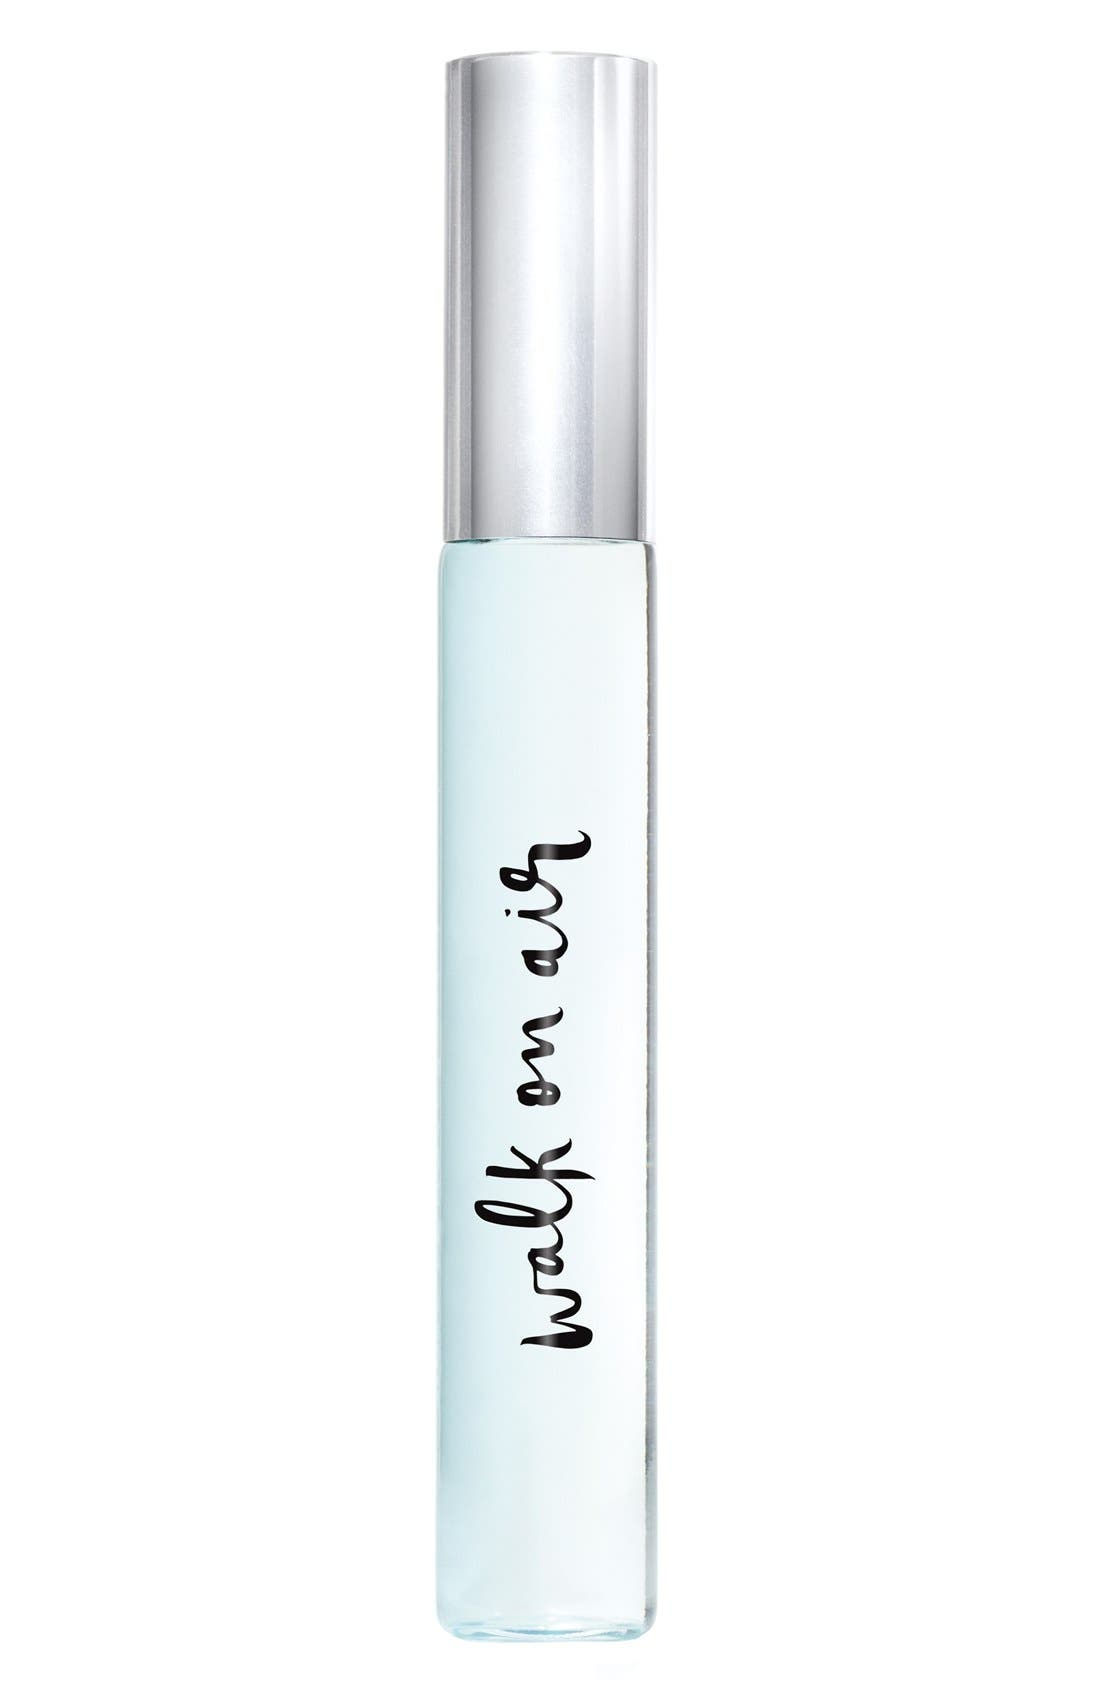 KATE SPADE NEW YORK,                             'walk on air' eau de parfum rollerball,                             Alternate thumbnail 6, color,                             NO COLOR